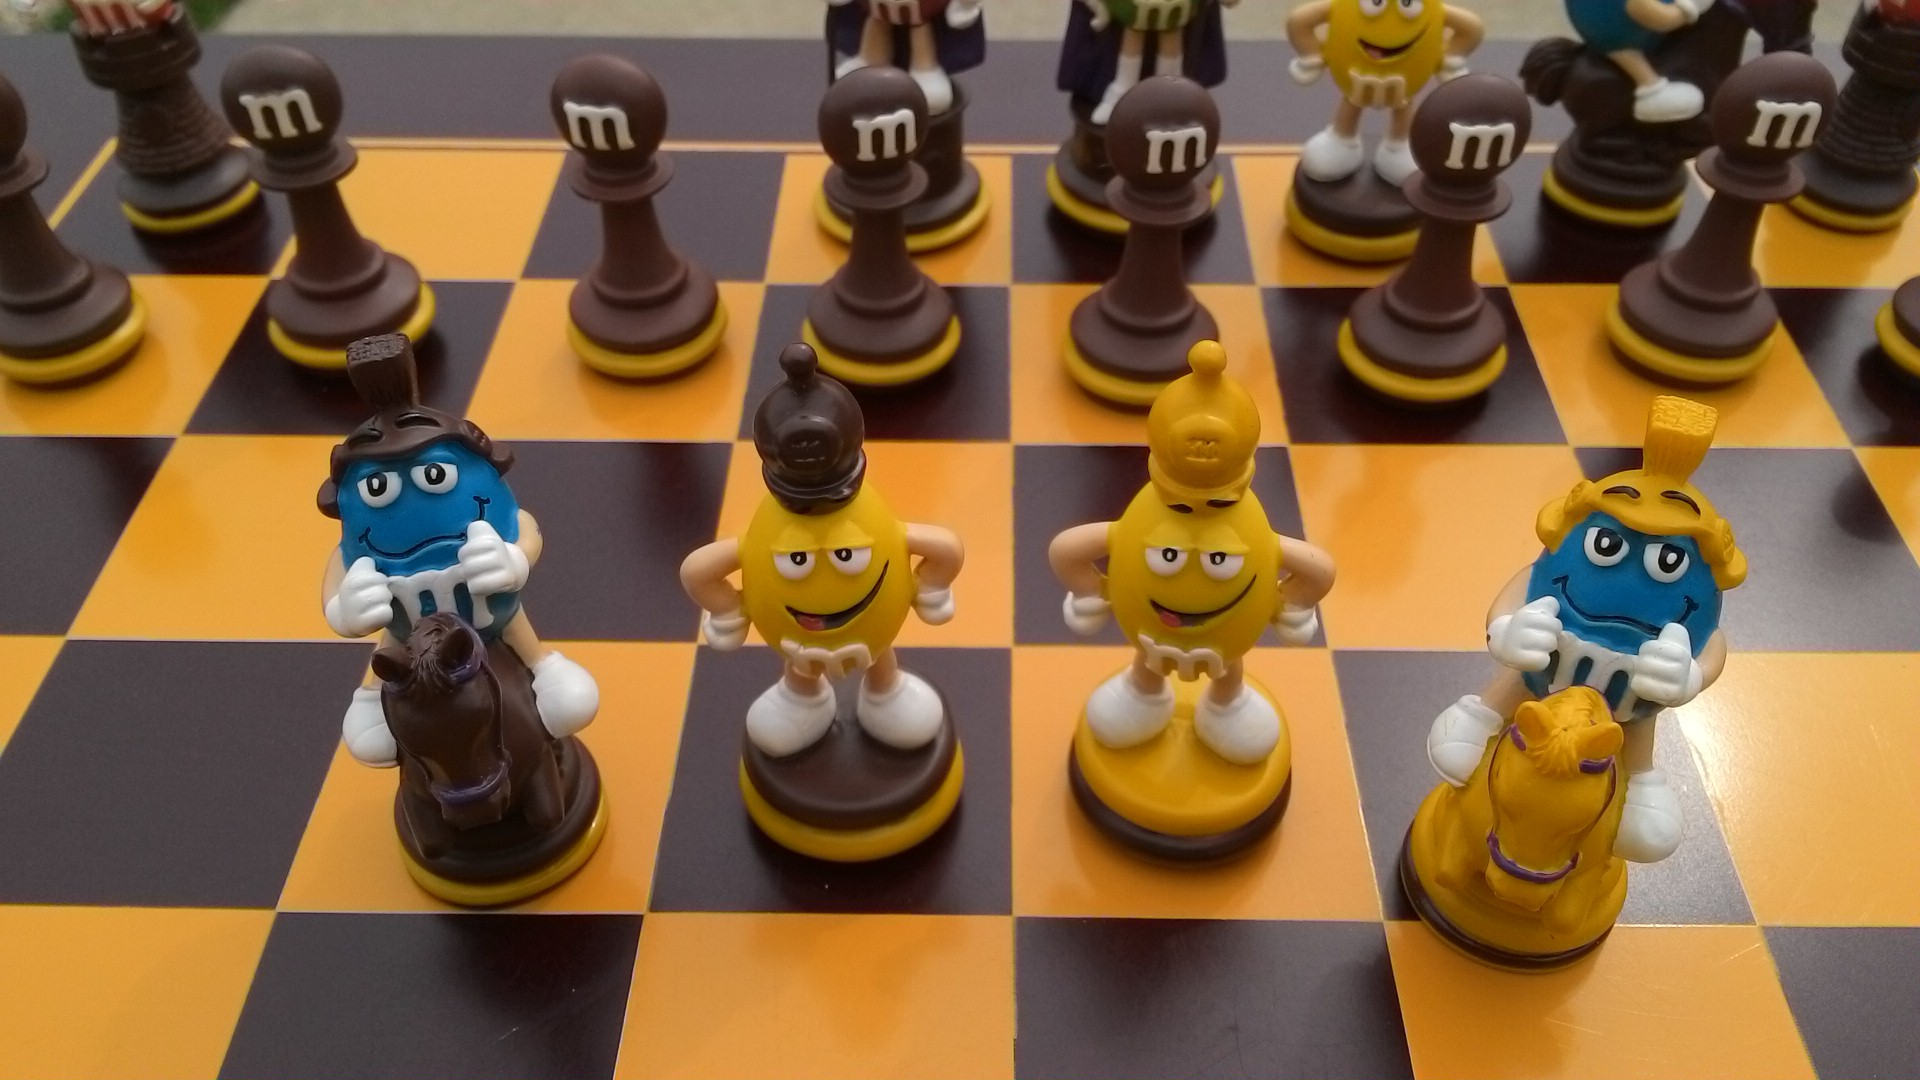 Cute chess set - Ceramic chess sets for sale ...